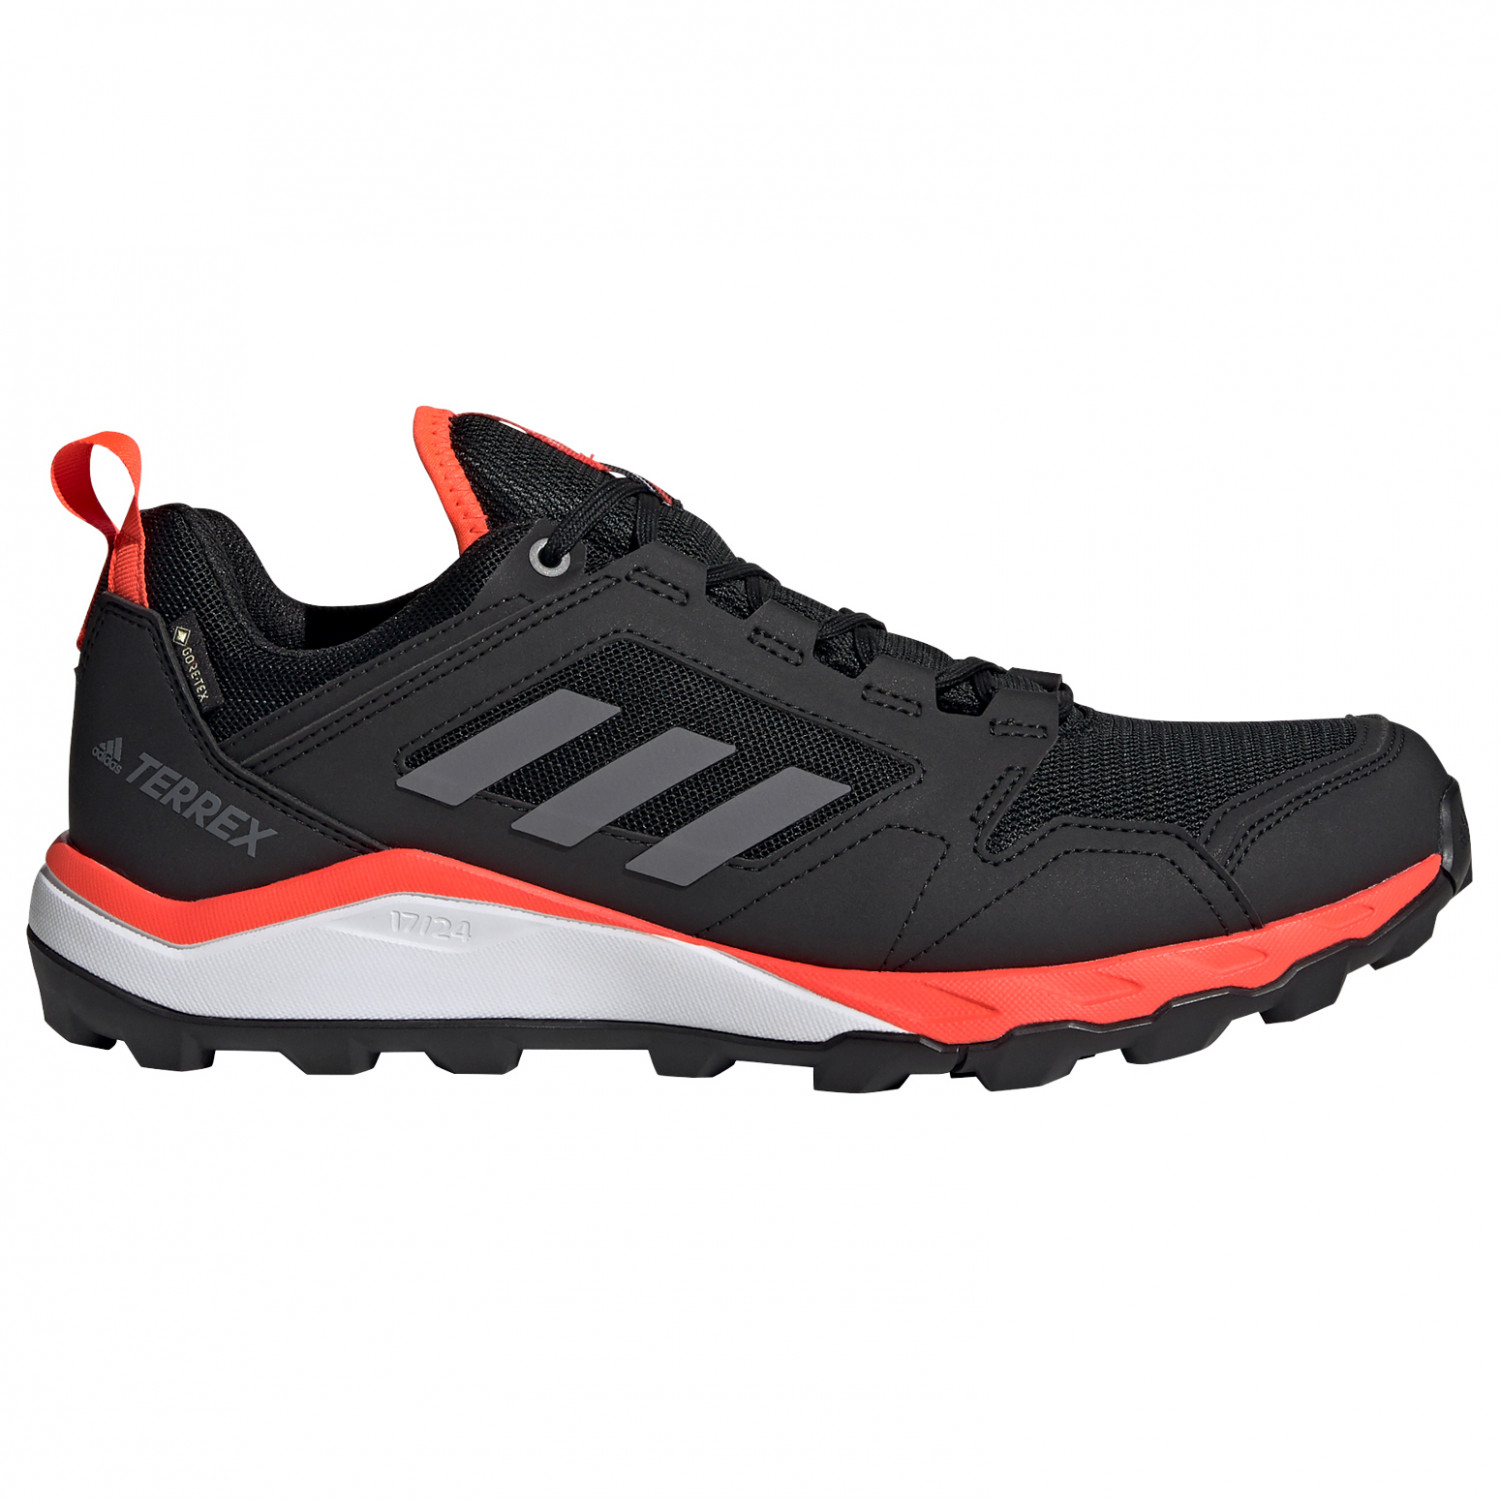 adidas - Terrex Agravic TR GTX - Trail running shoes - Core Black / Grey Four F17 / Solar Red | 6,5 (UK)